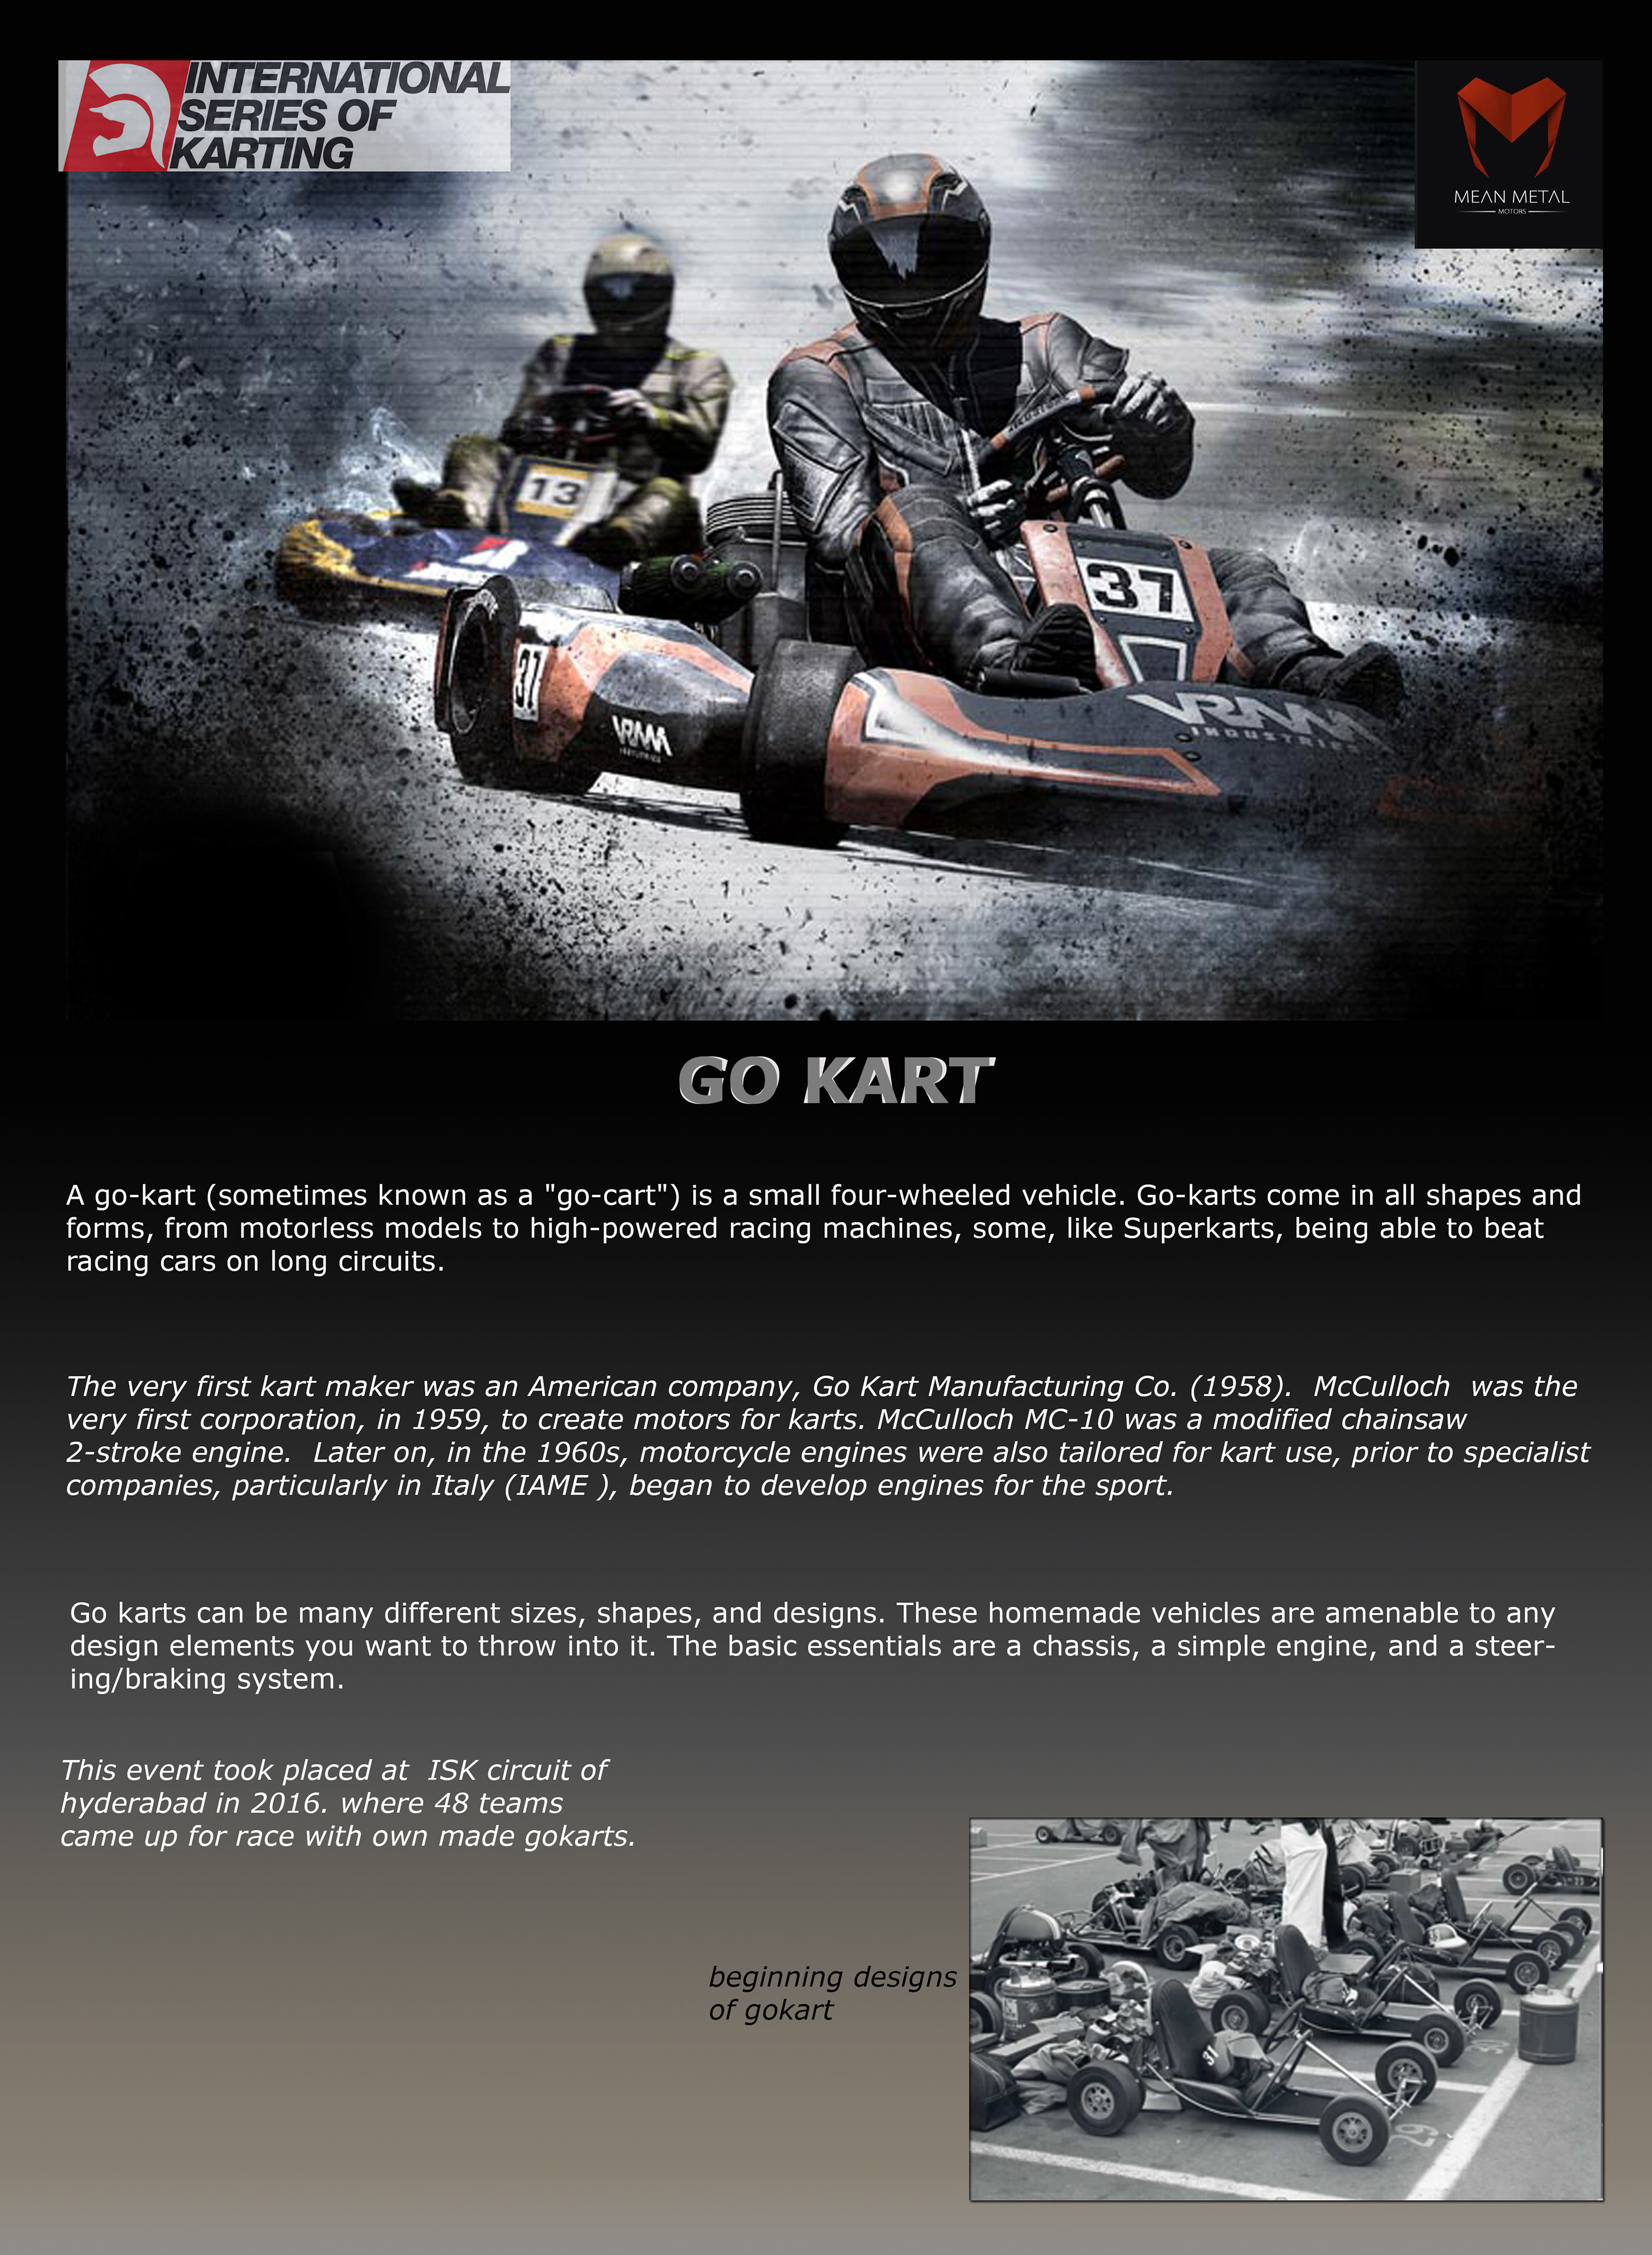 GO KART DESIGN, FABRICATION AND RACE (ISK HYDERABAD) on Behance